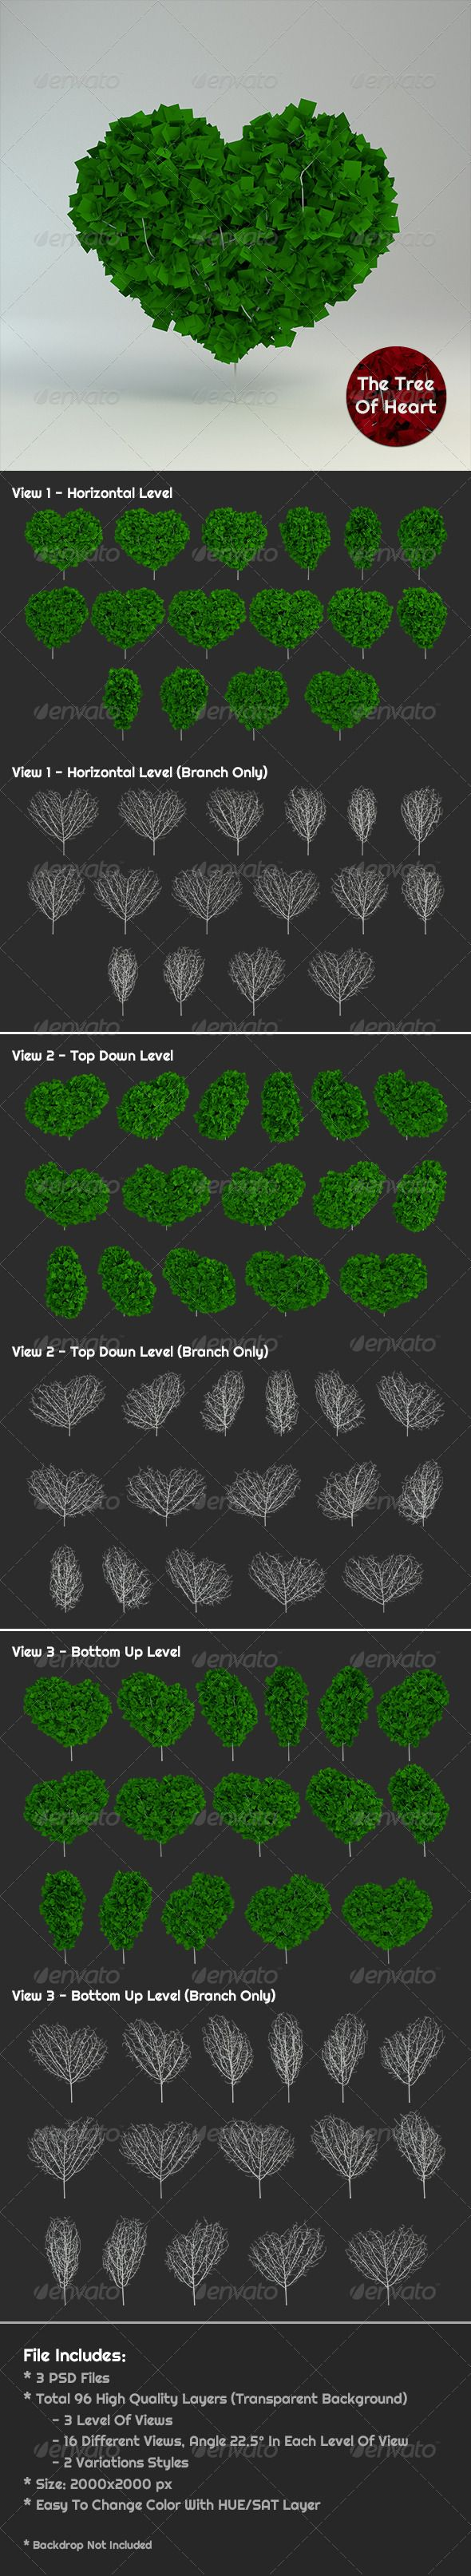 Random 3D Graphics  Renders  The Tree Of Heart Random 3D Graphics  Renders  The Tree Of Heart  Random 3D Graphics  Renders by itefan